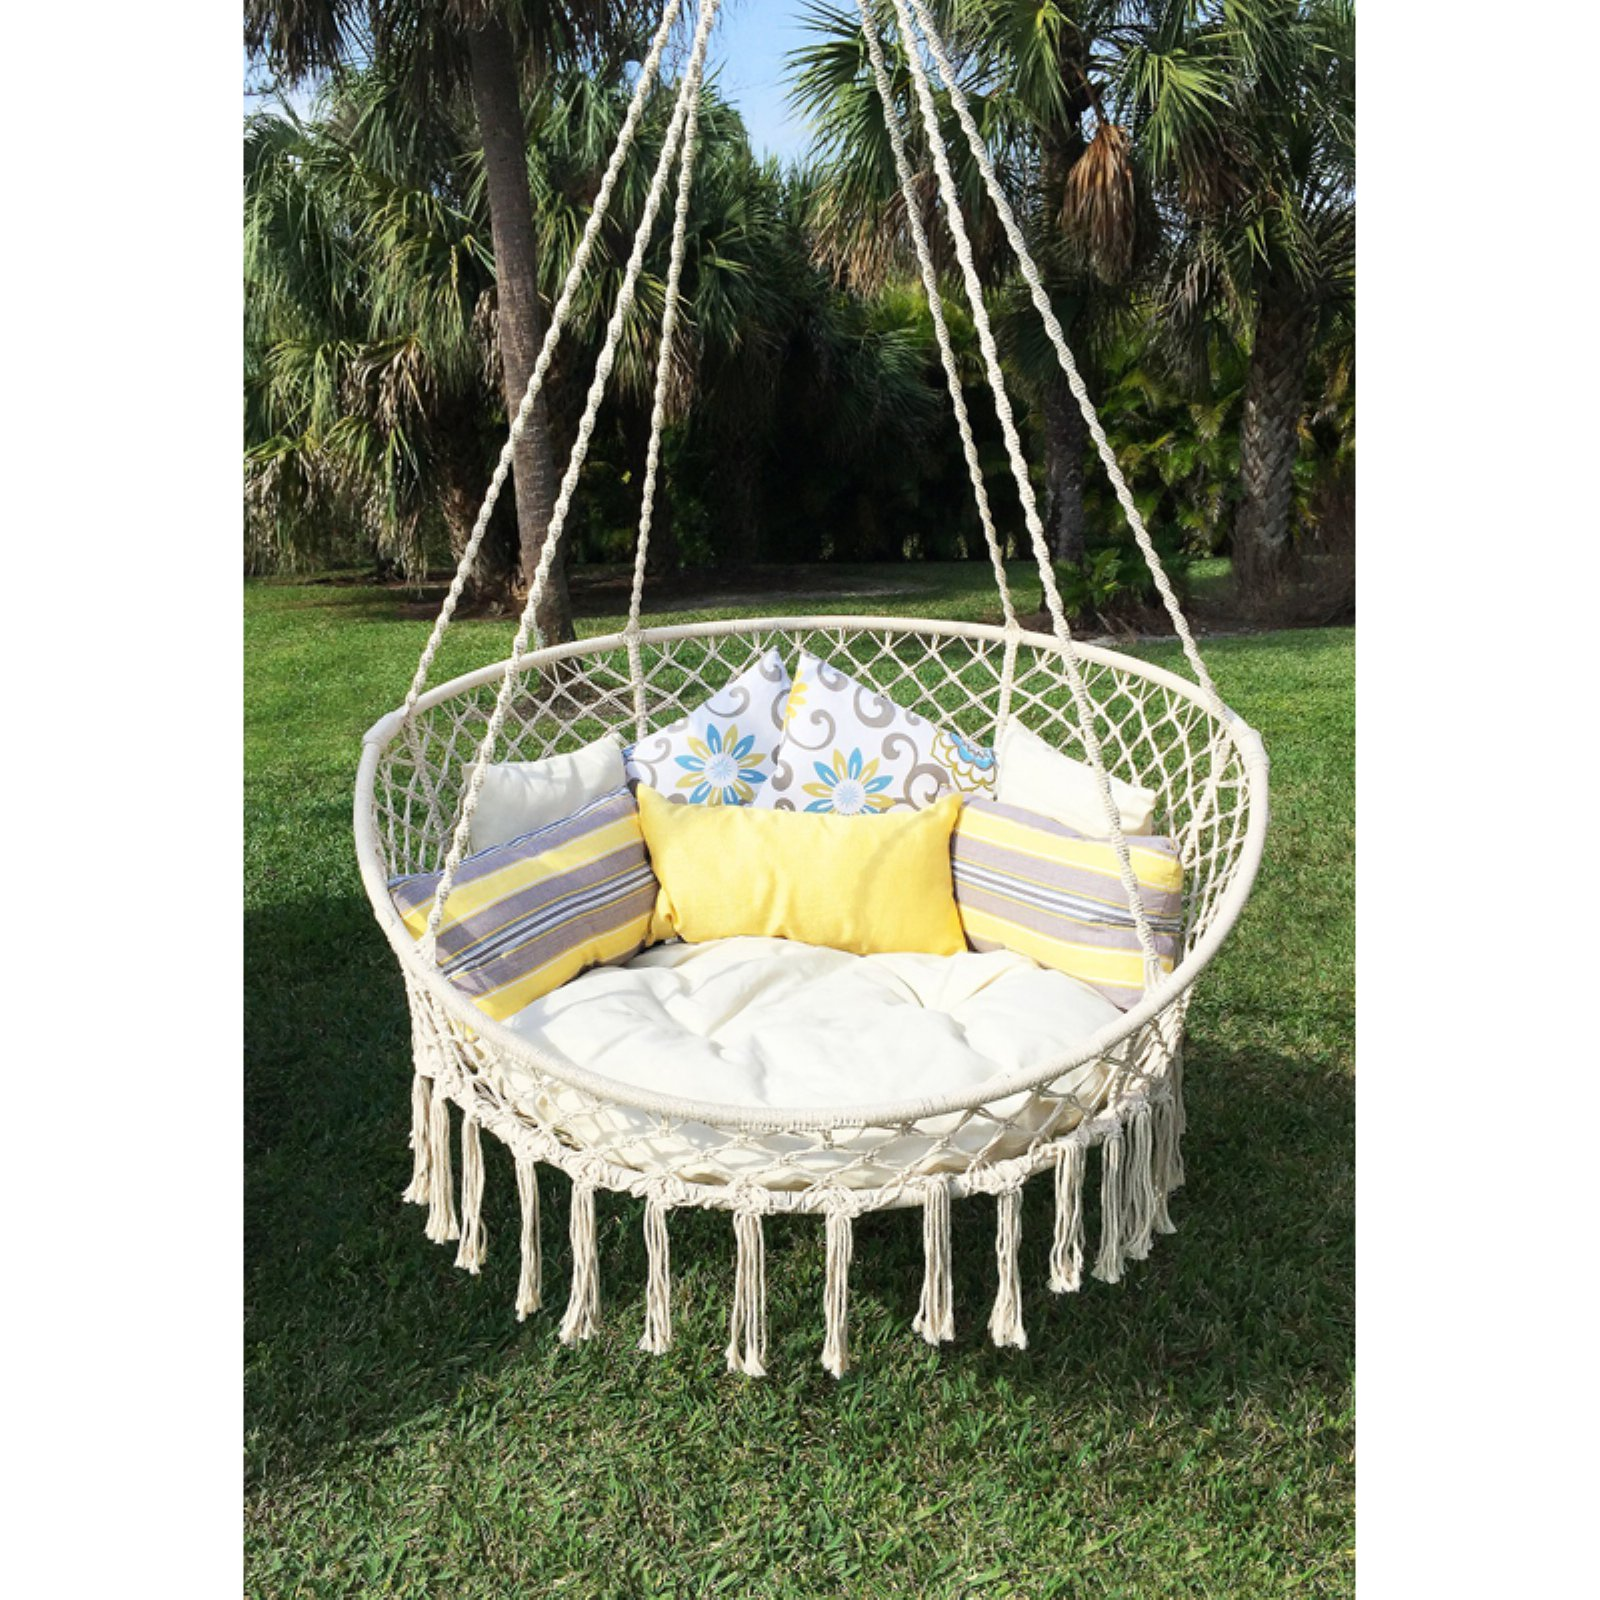 hanging chair rope cheap covers and sashes rental bliss hammocks large hammock walmart com